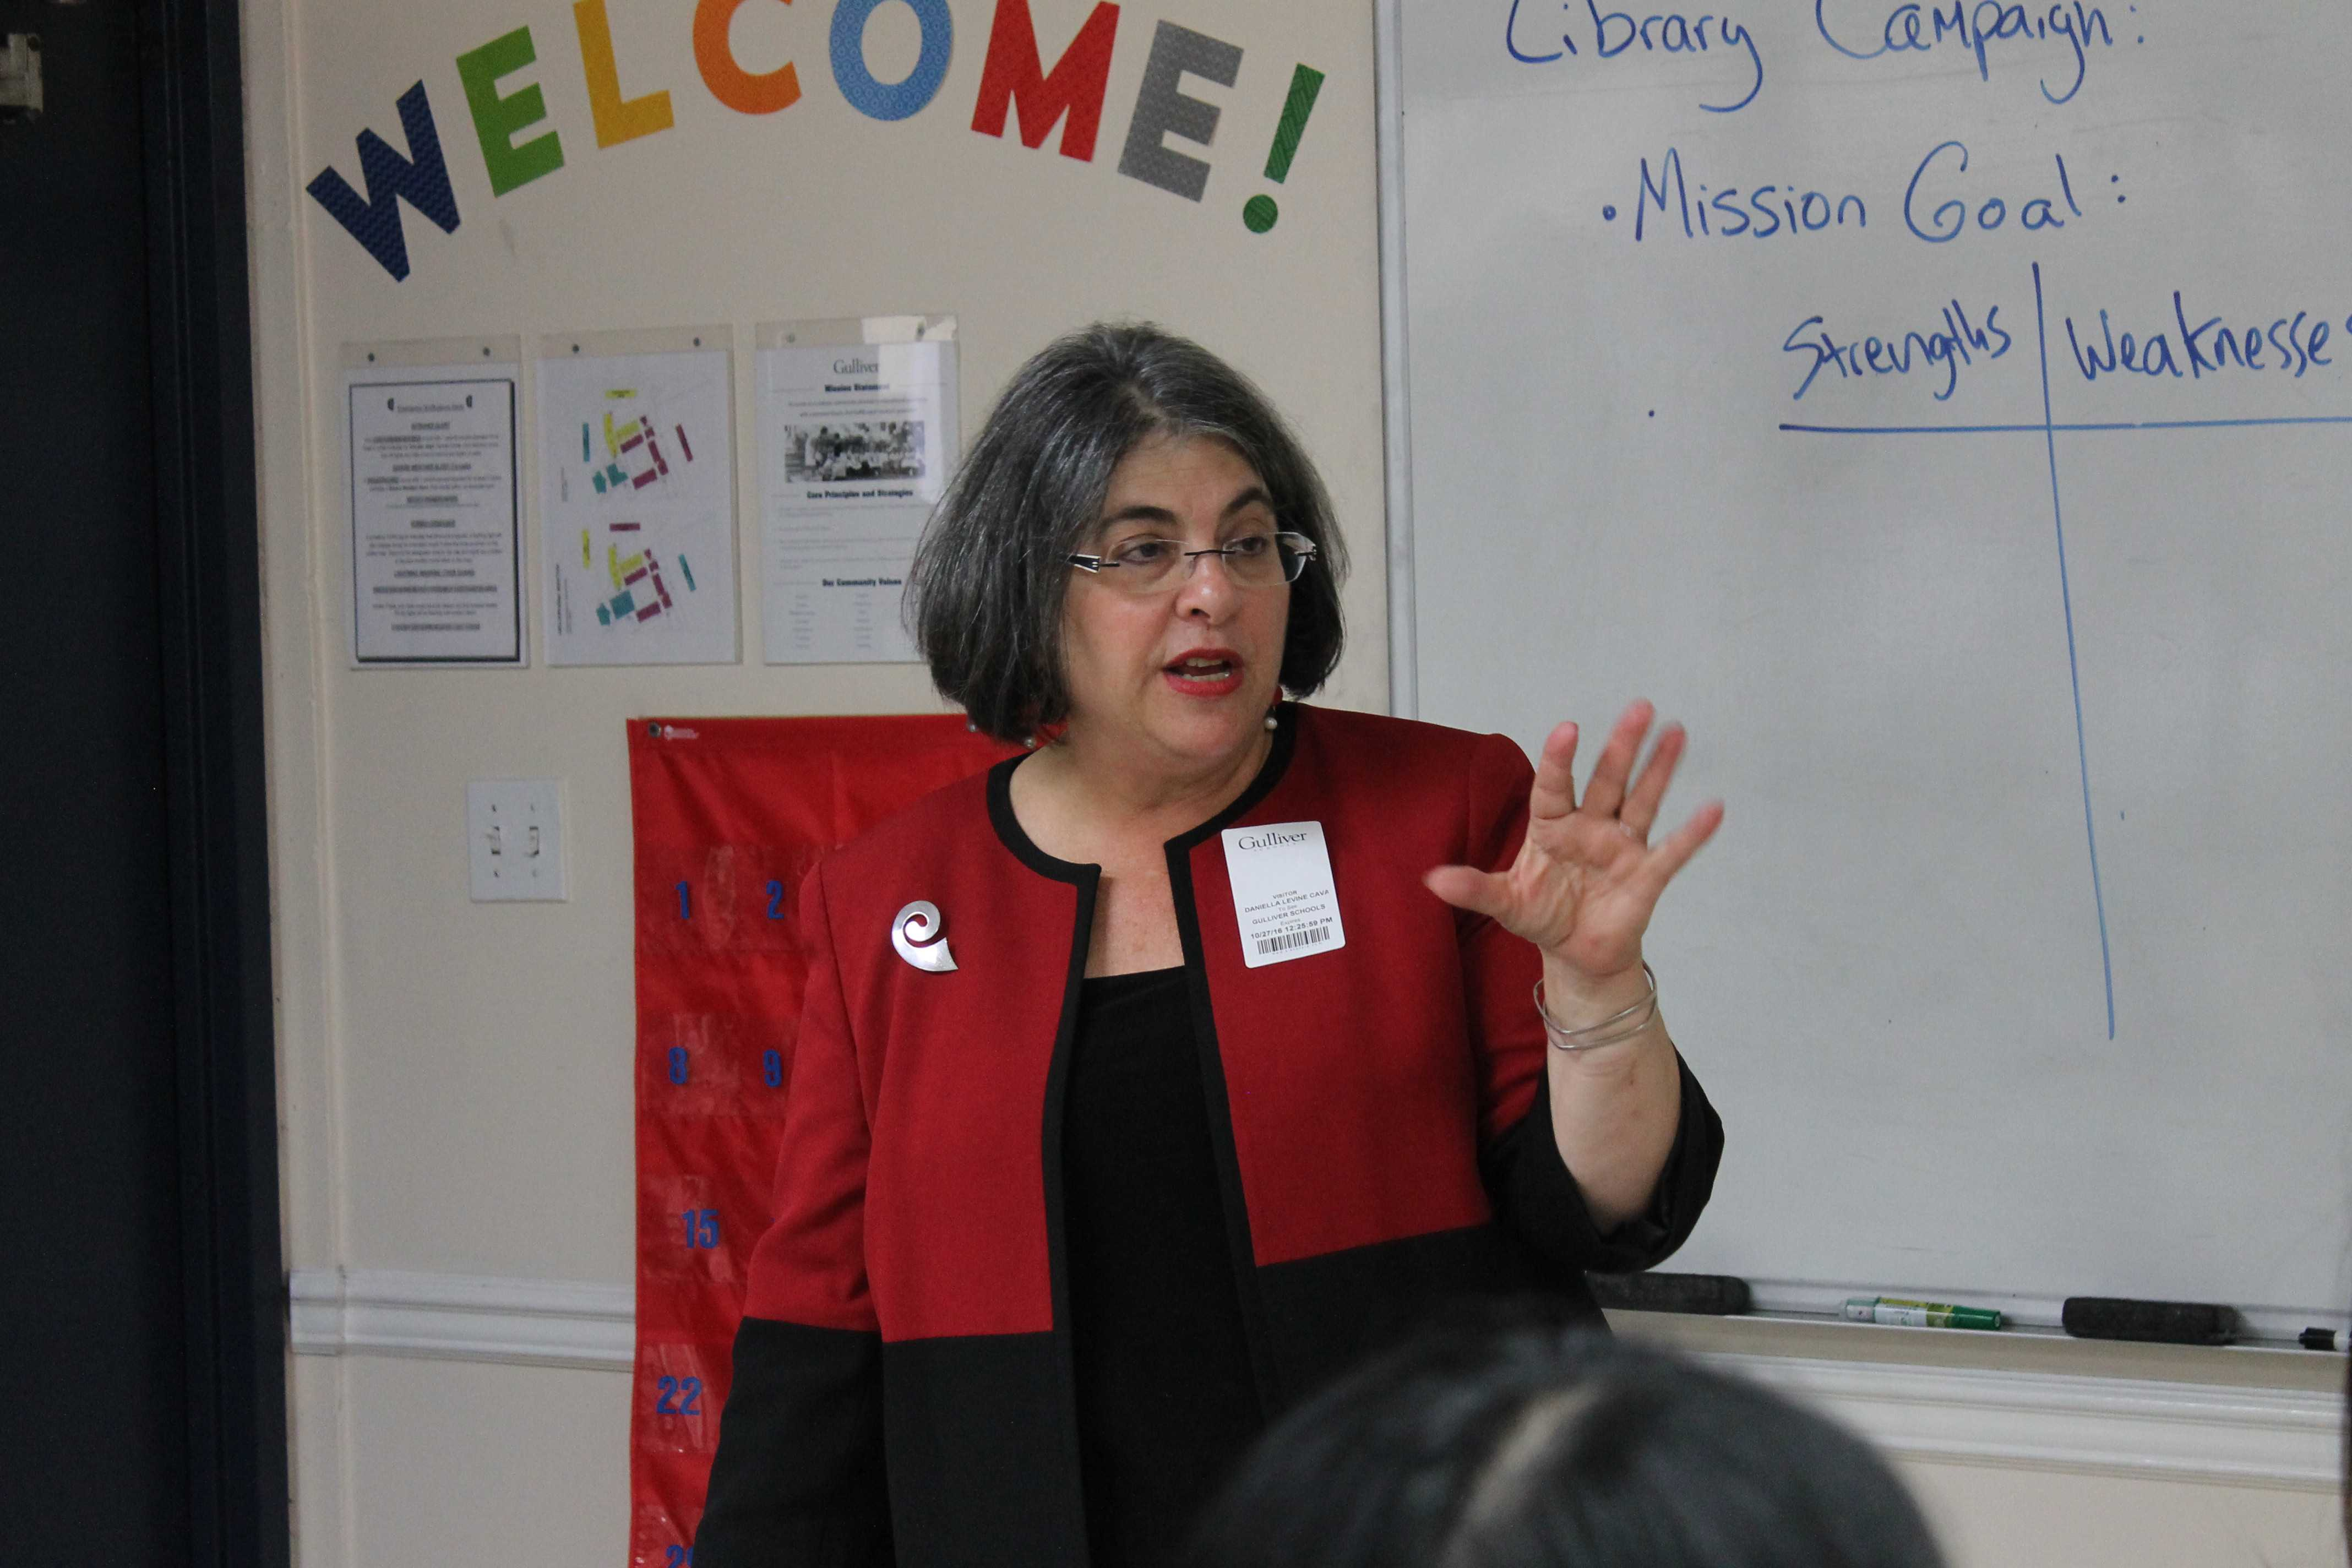 Actively Engaged: County Commissioner visits Youth to Power Raider Seminar